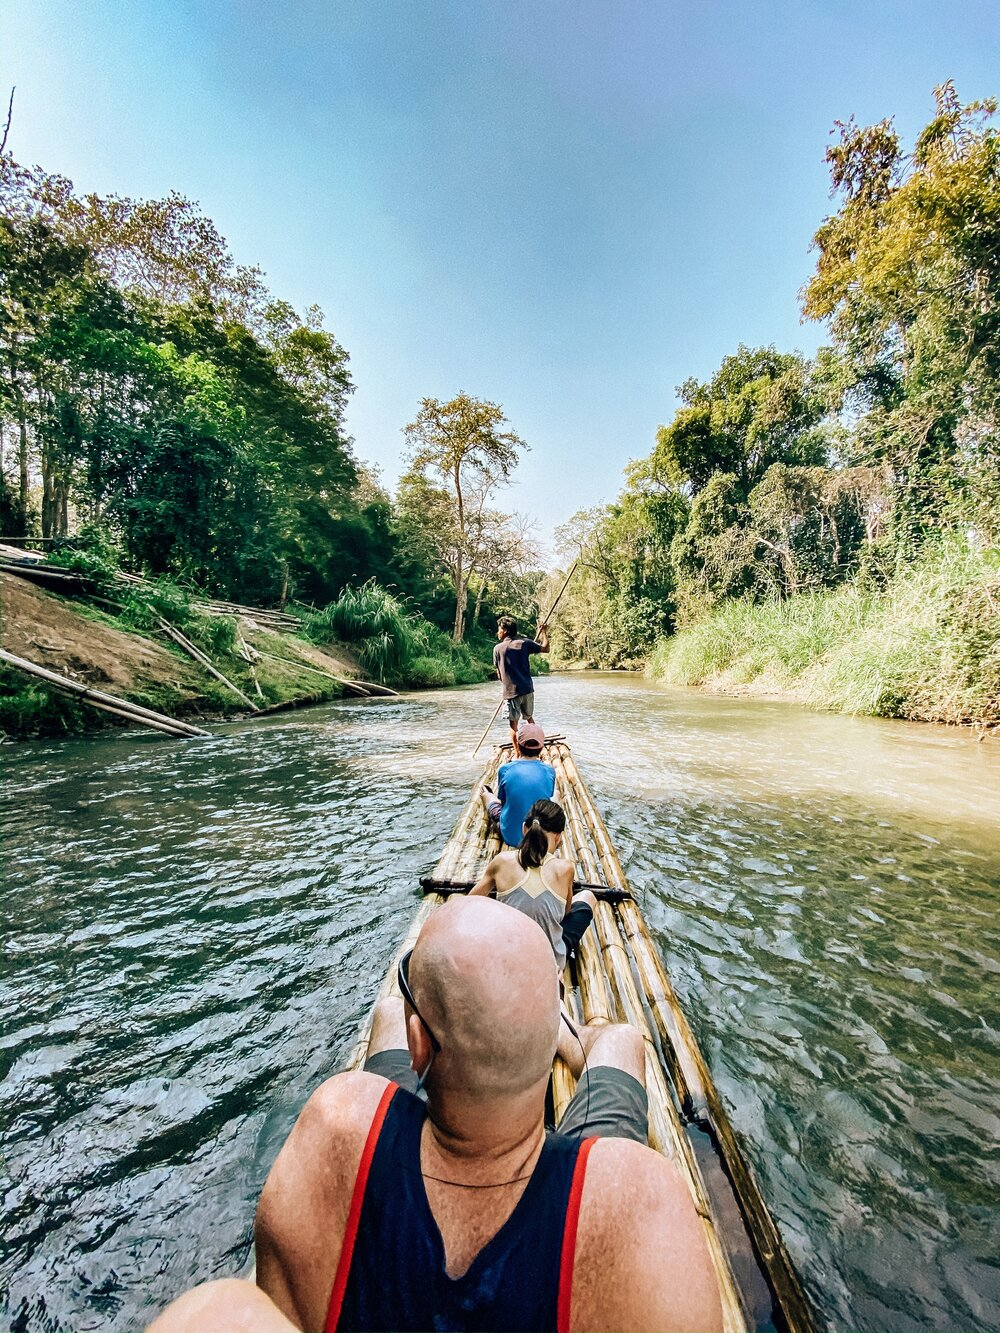 Family activity bamboo river rafting in Thailand